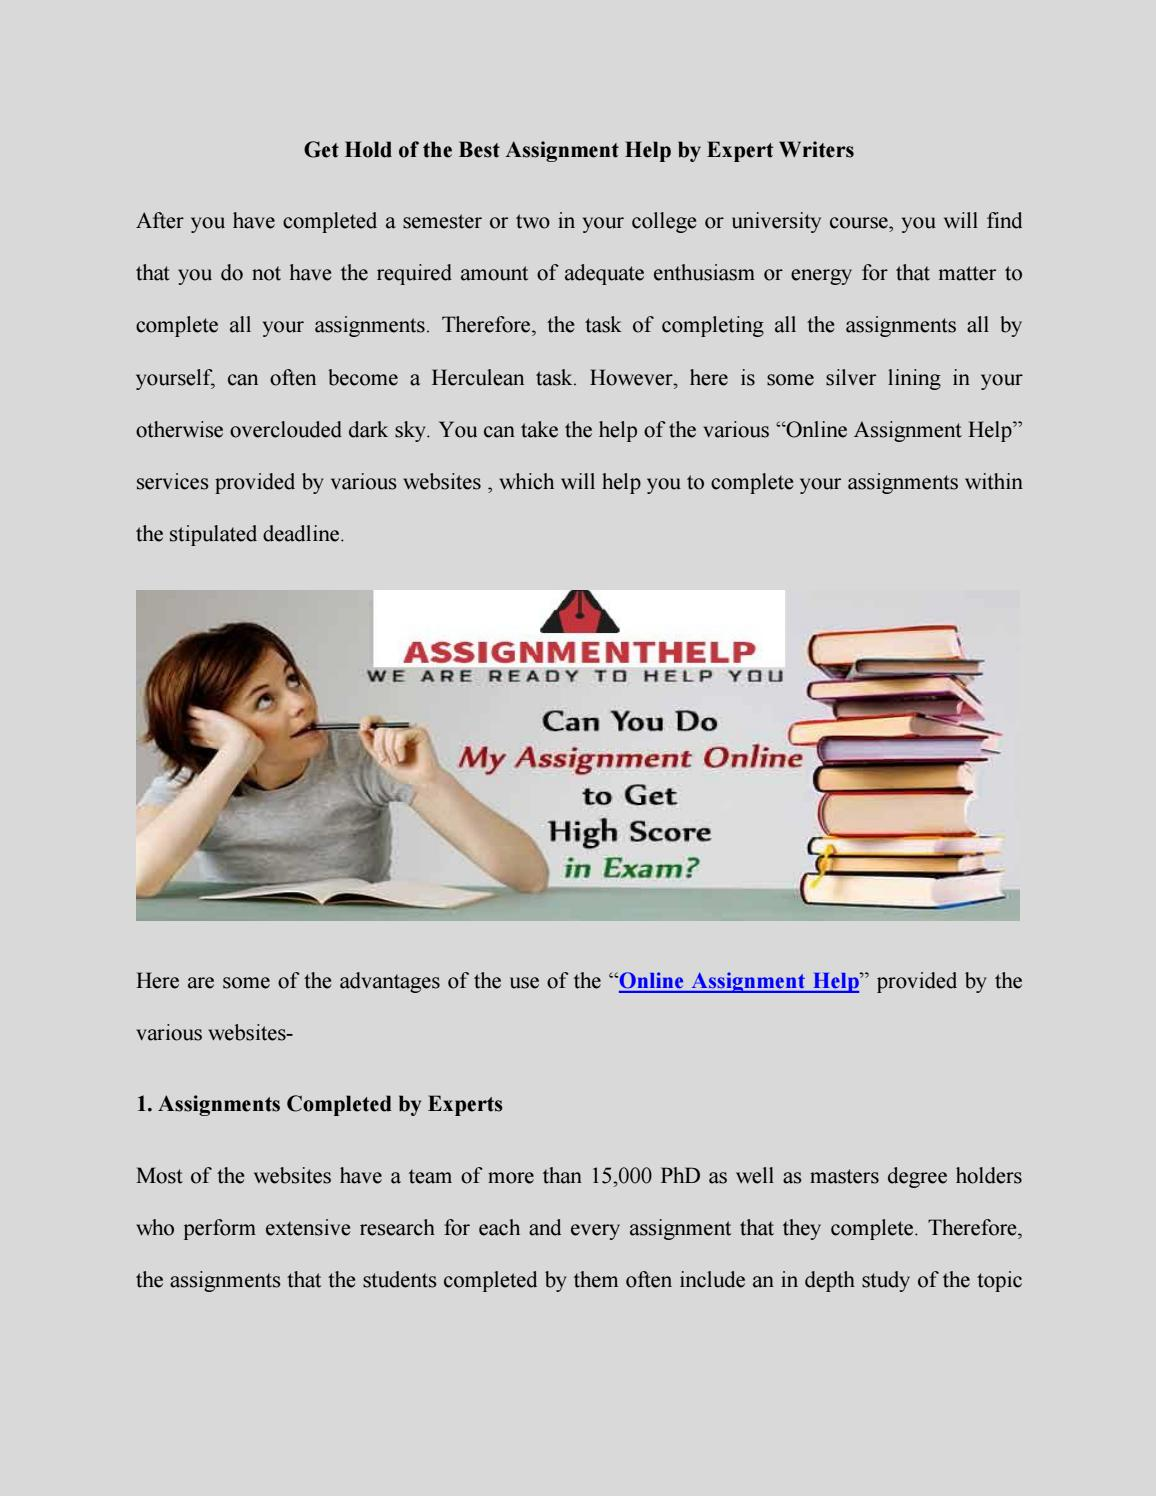 Pay for my best assignment online custom analysis essay ghostwriter site for school